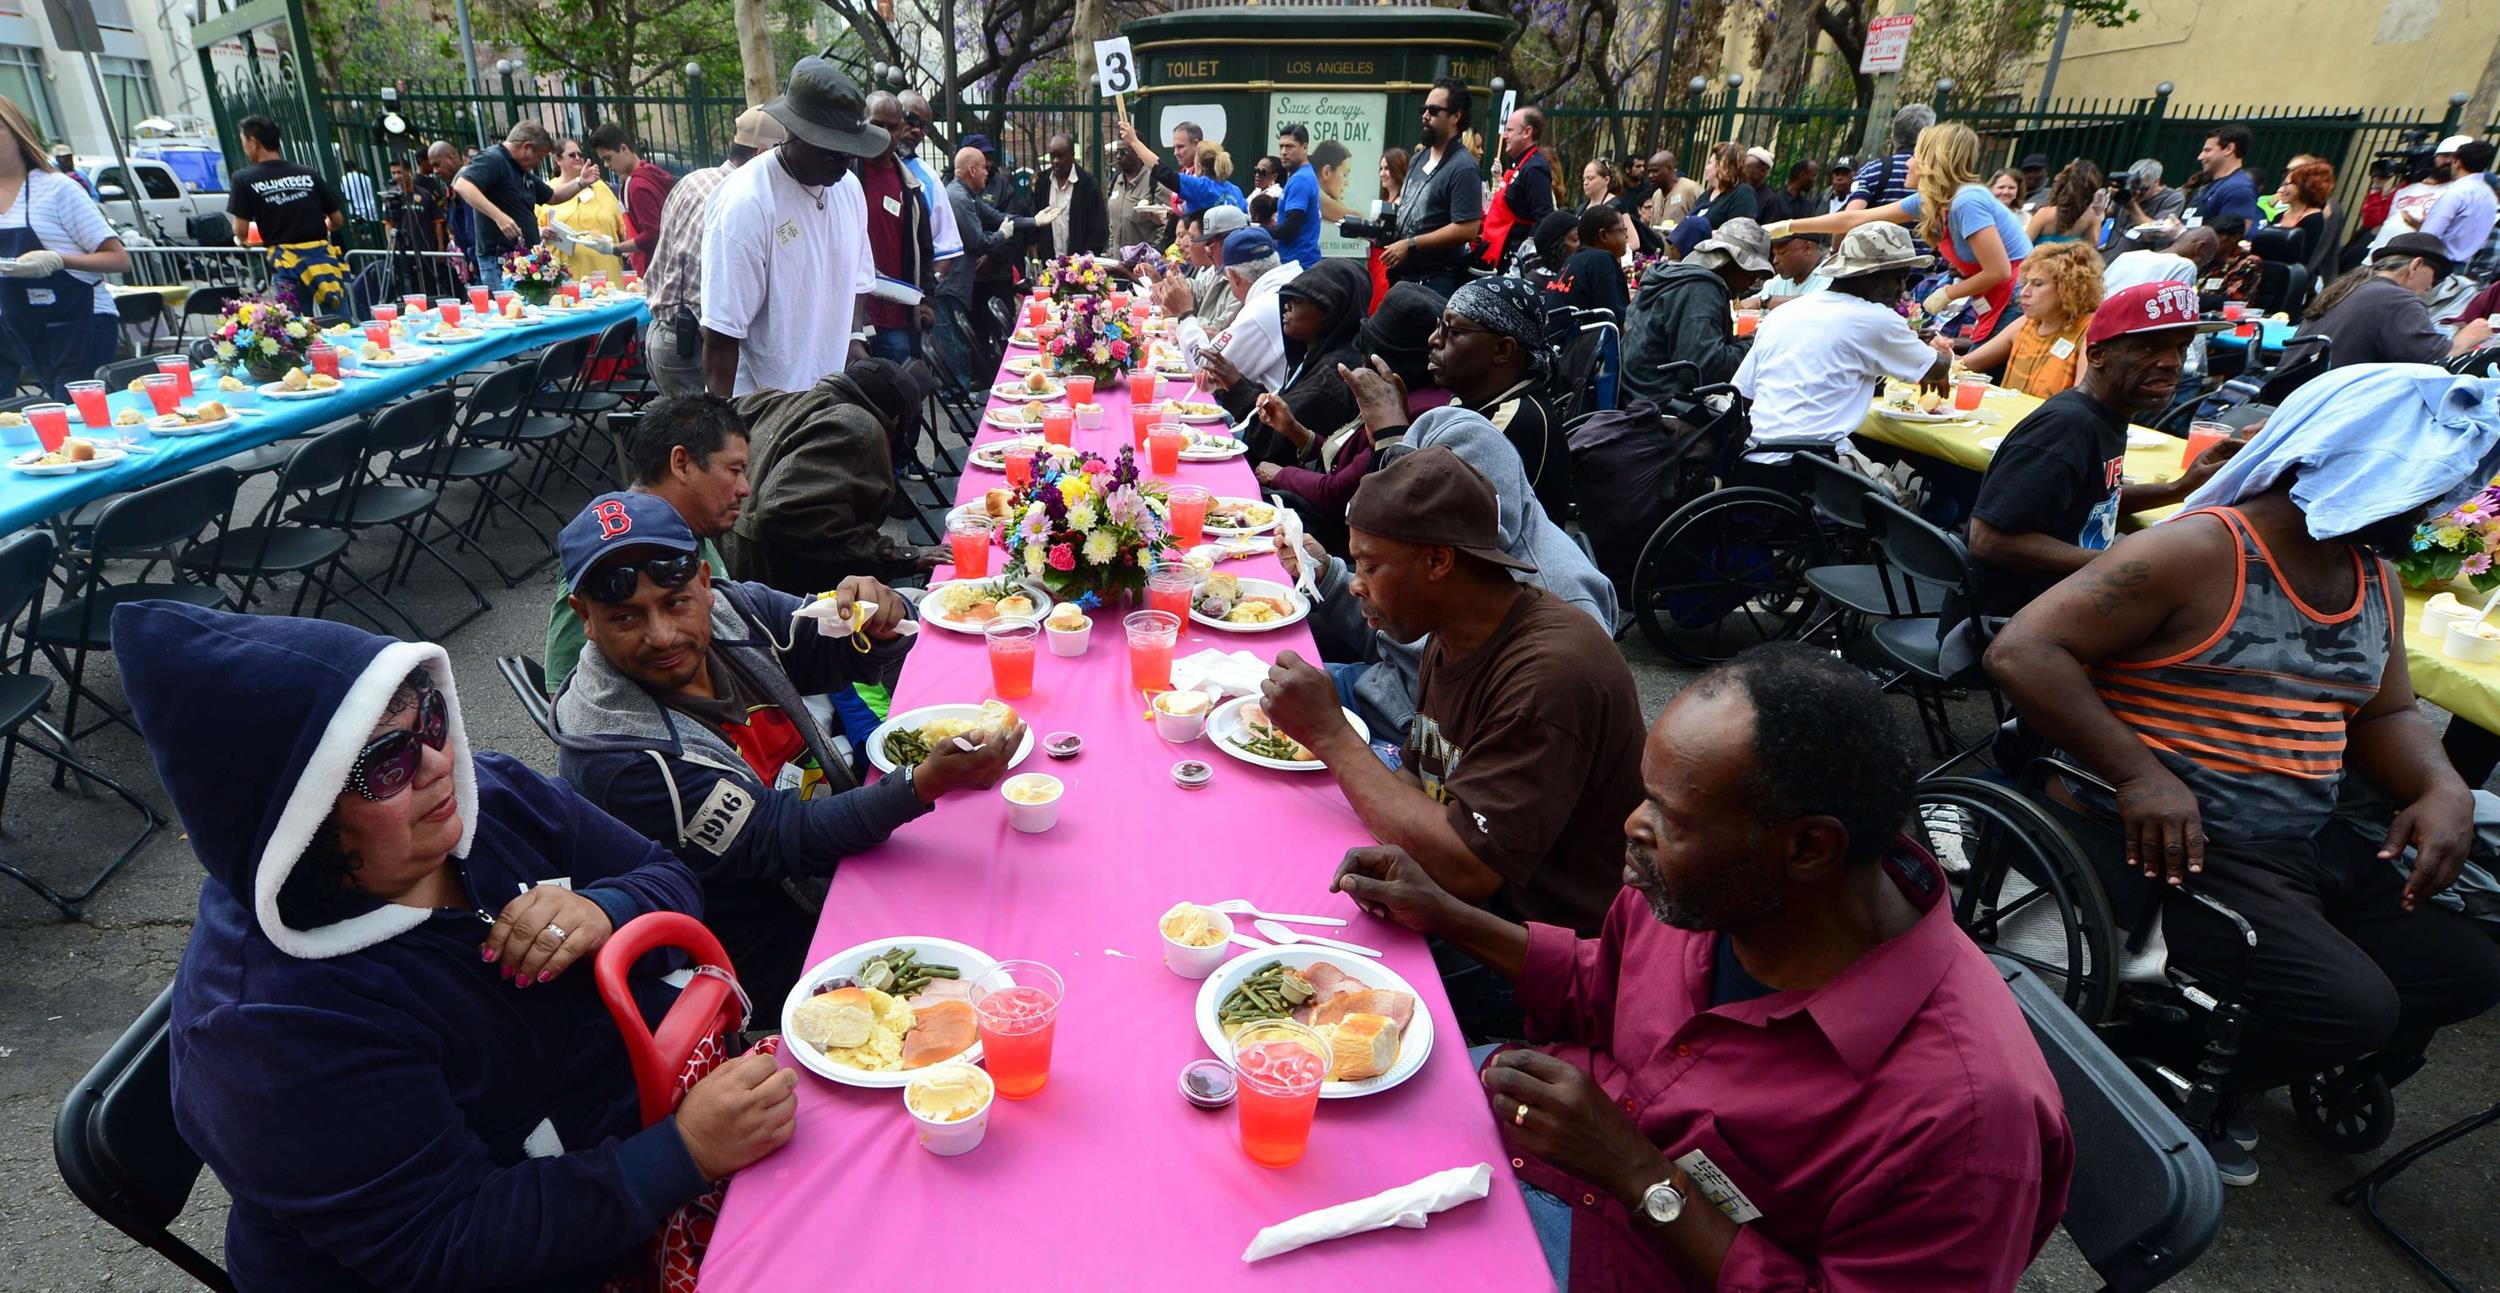 Image:meal hosted by the LA Mission